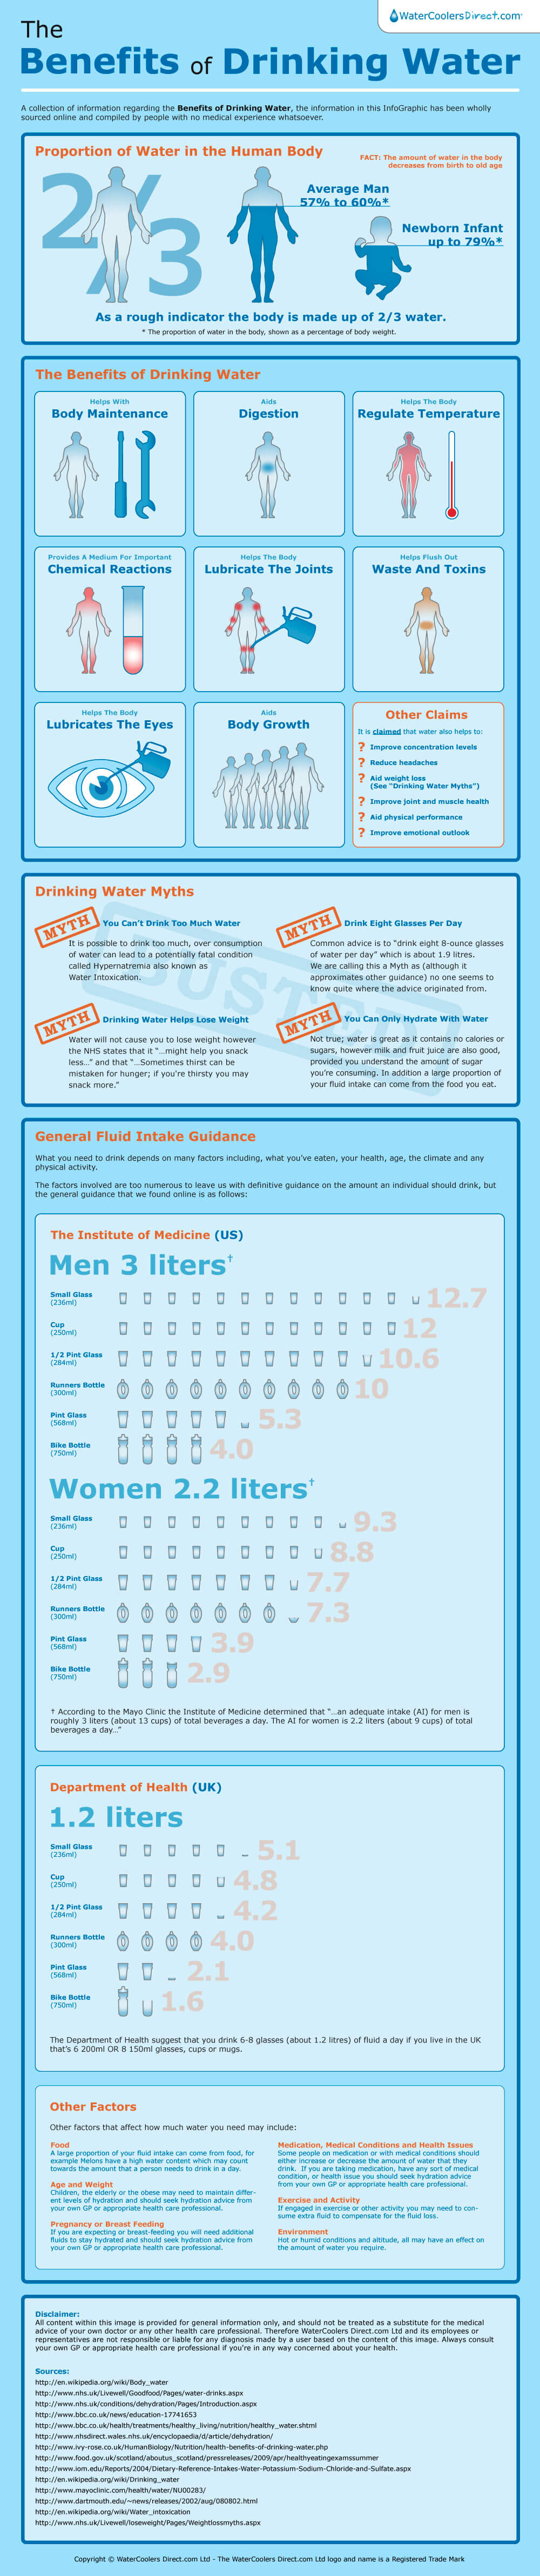 Benefits of Drinking Water - Infographic